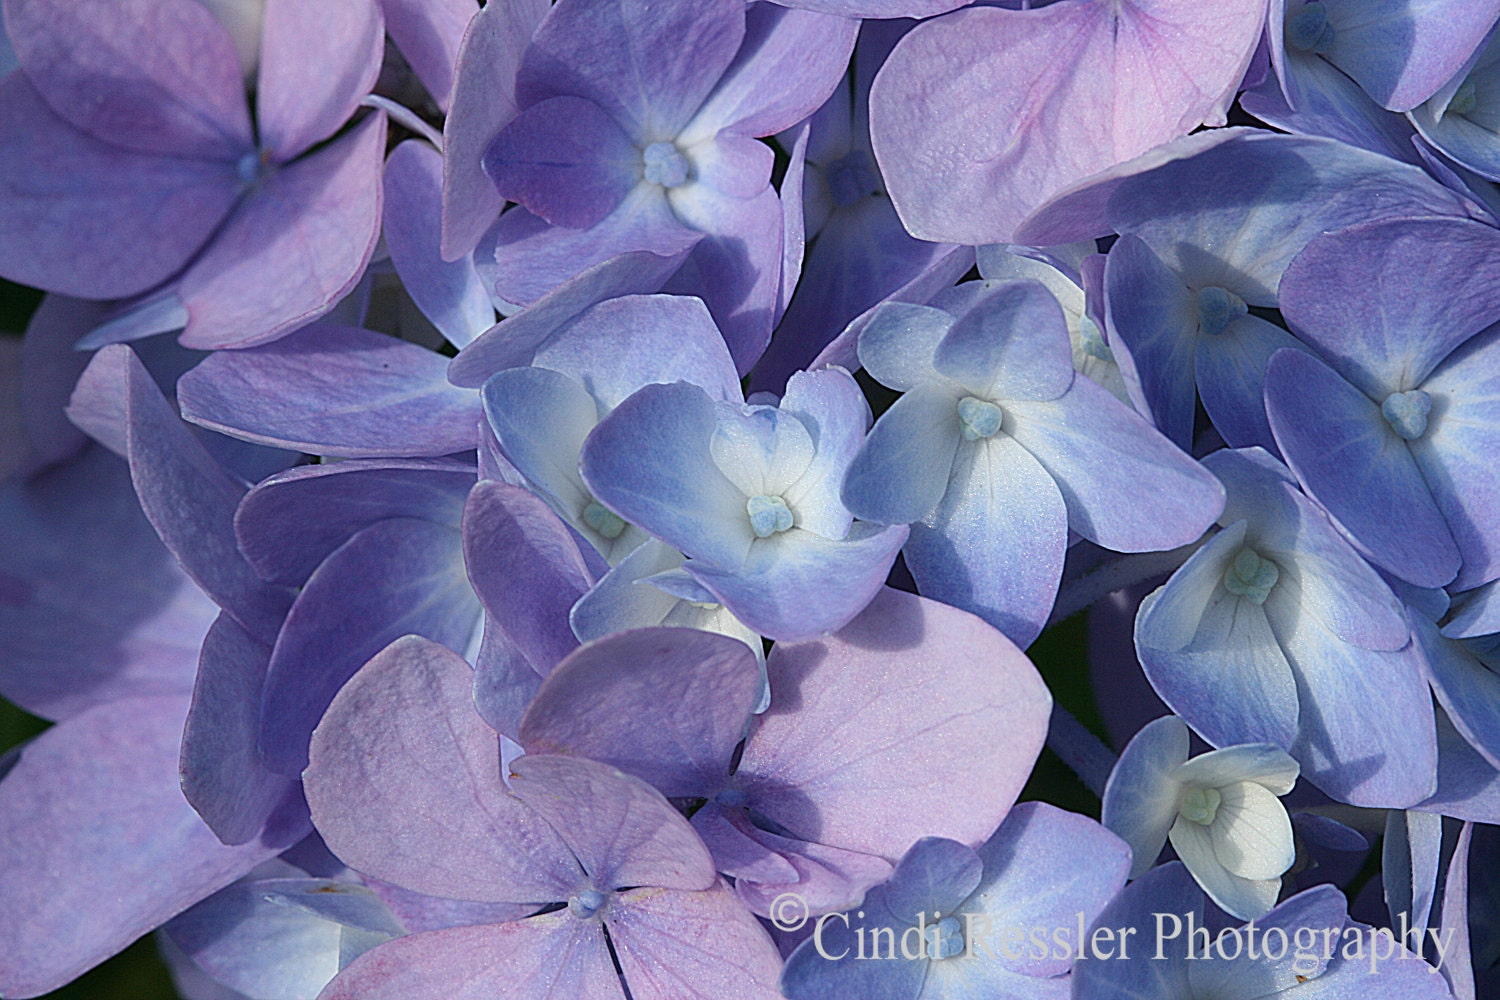 Hydrangea, 5x7 Fine Art Photography, Floral Photography, Flower Photography - CindiRessler